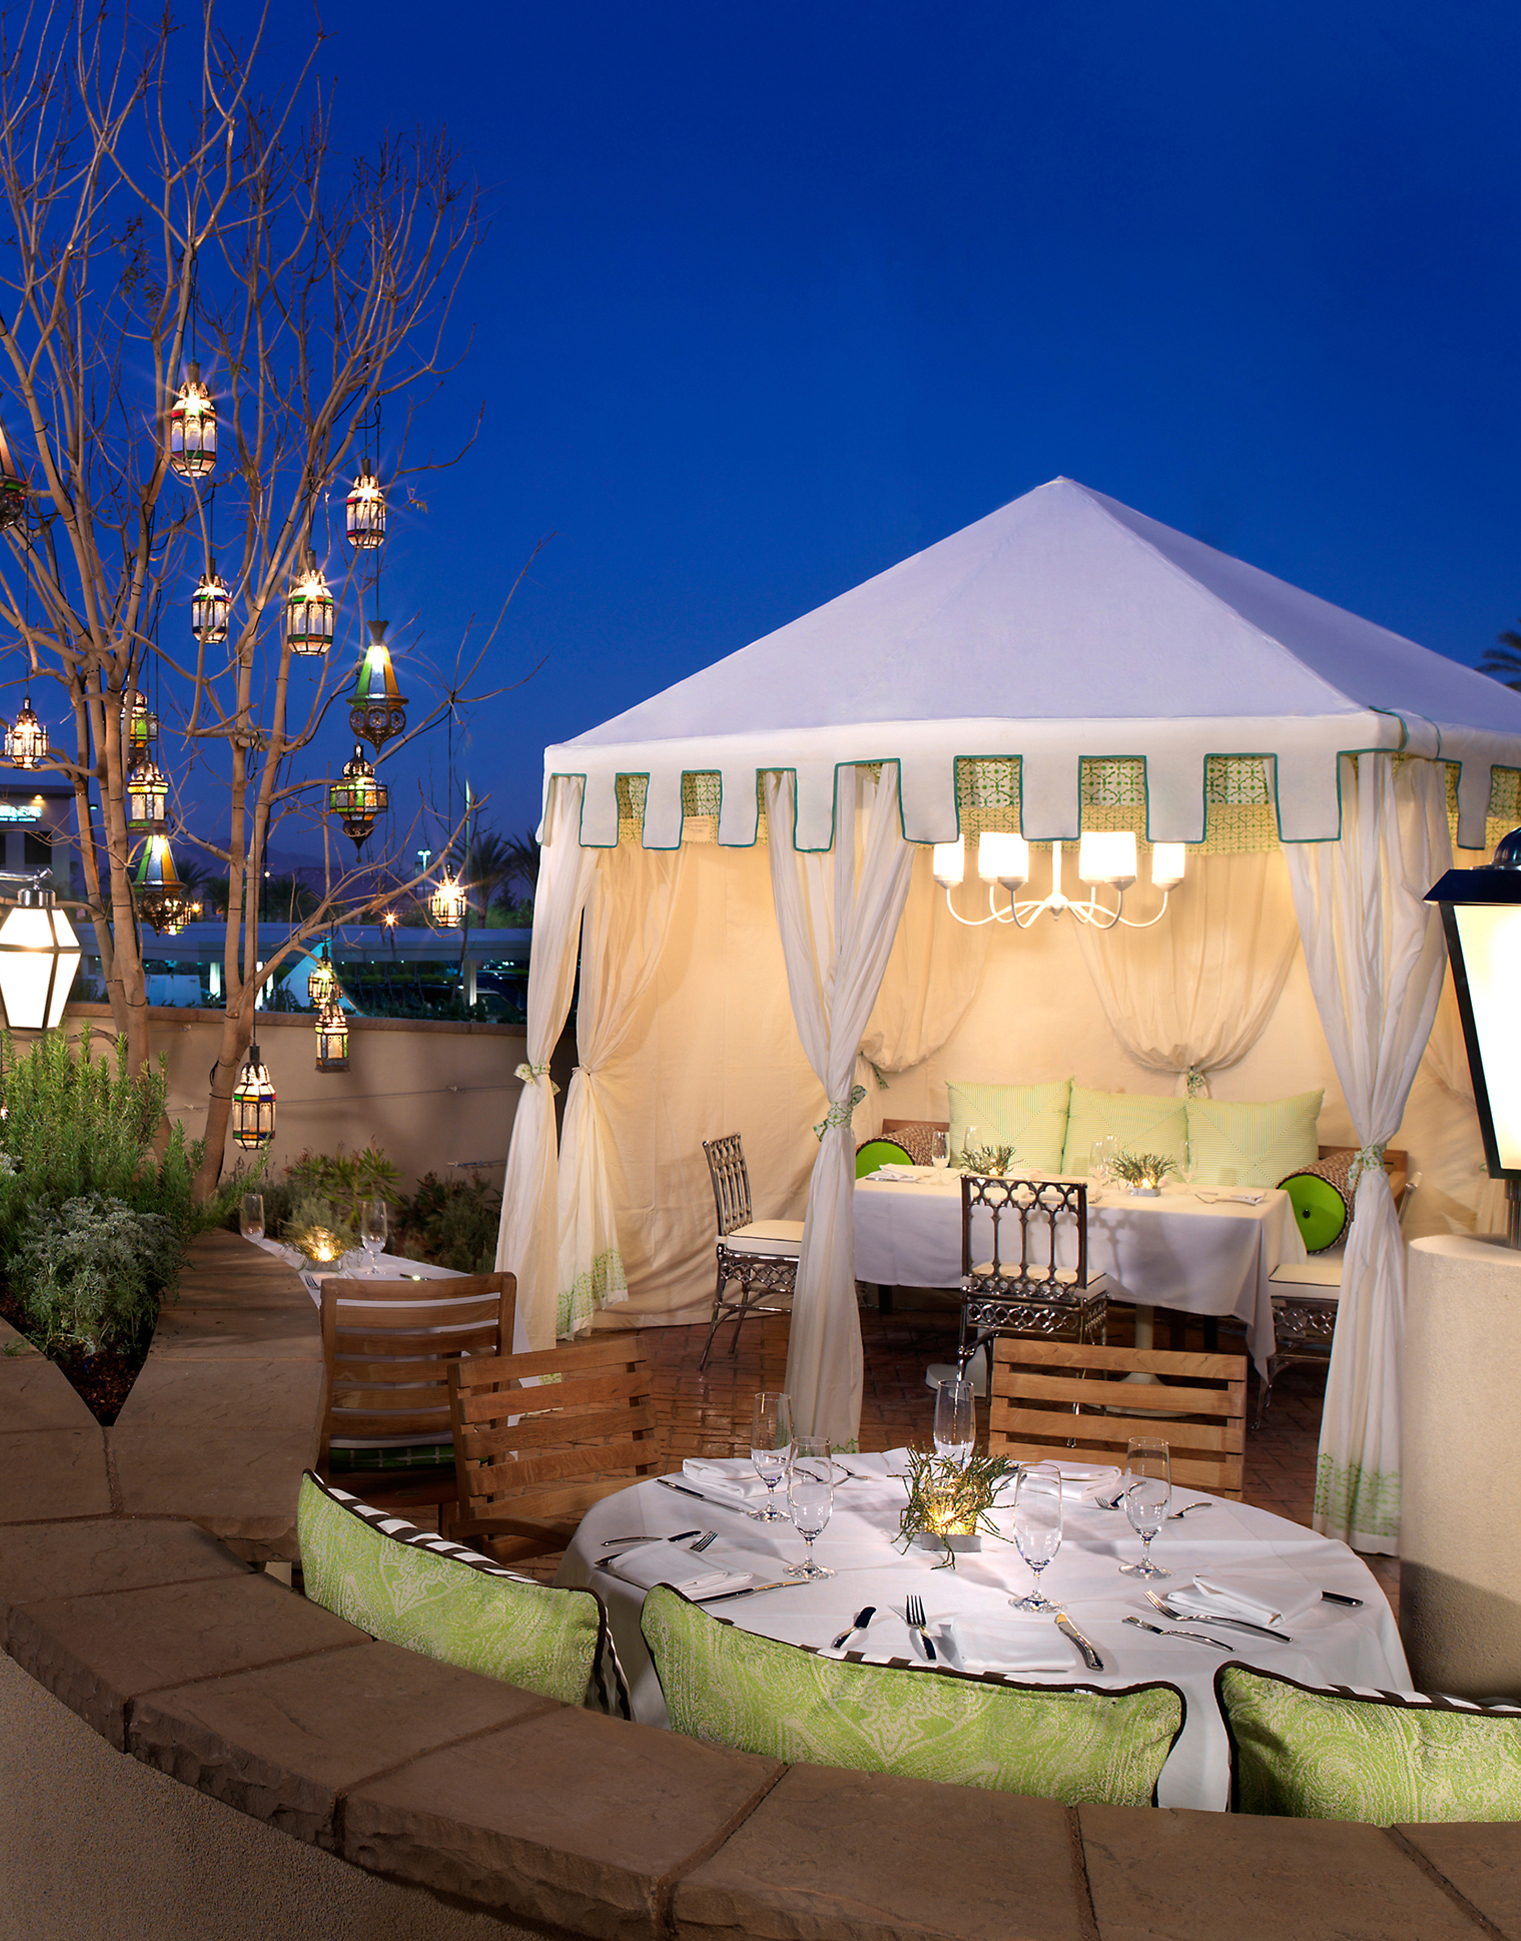 Vintner Grill in Summerlin offers both indoor and outdoor seating, with semi-private cabanas ideal for small weddings and personal proposals.